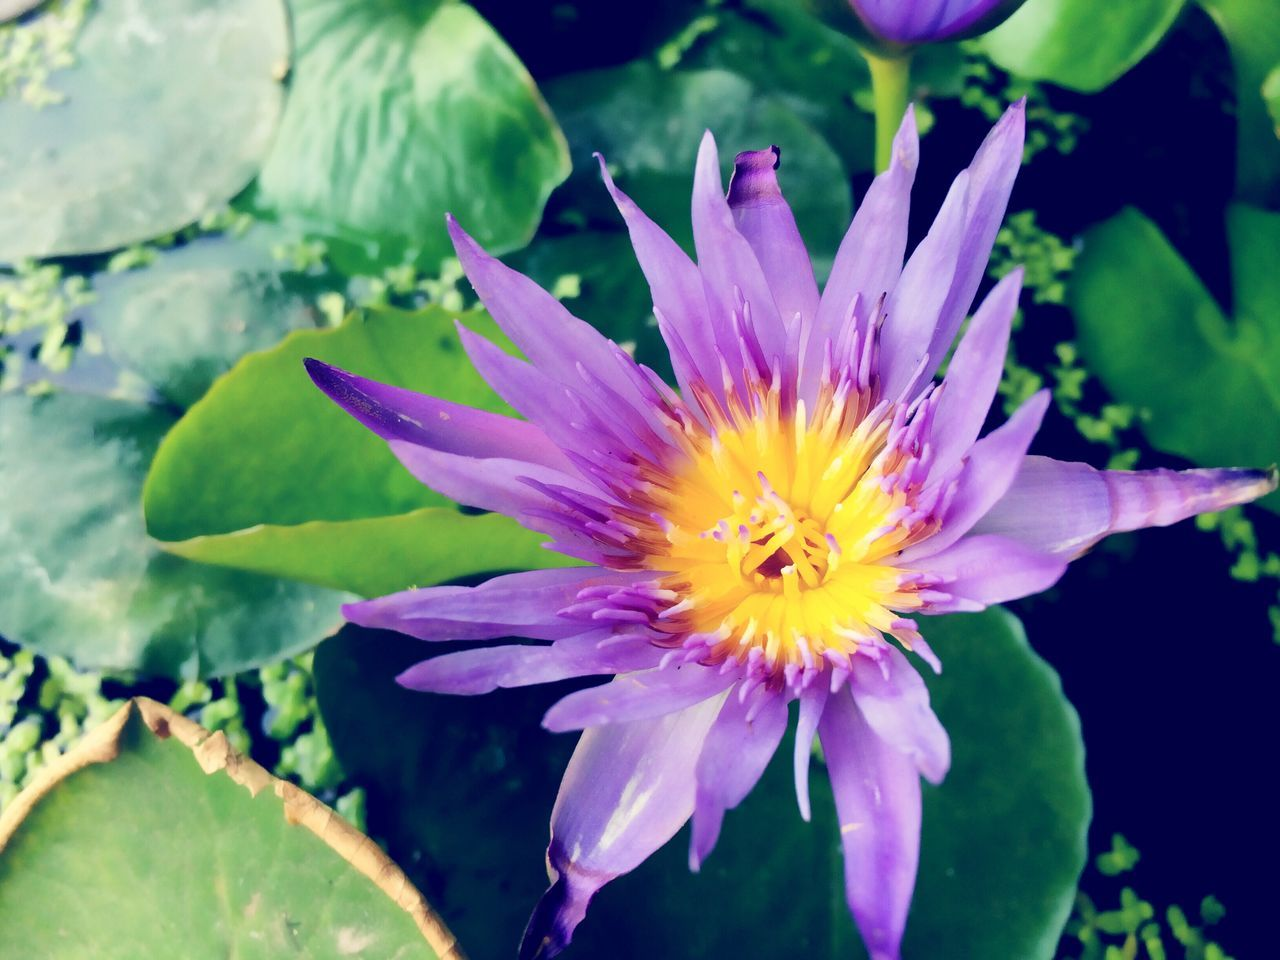 Green Flower Freshness Petal Nature Beauty In Nature Fragility Growth Flower Head Plant Close-up Pink Color Blooming Leaf No People Outdoors Passion Flower Lotus Water Floating On Water Plant